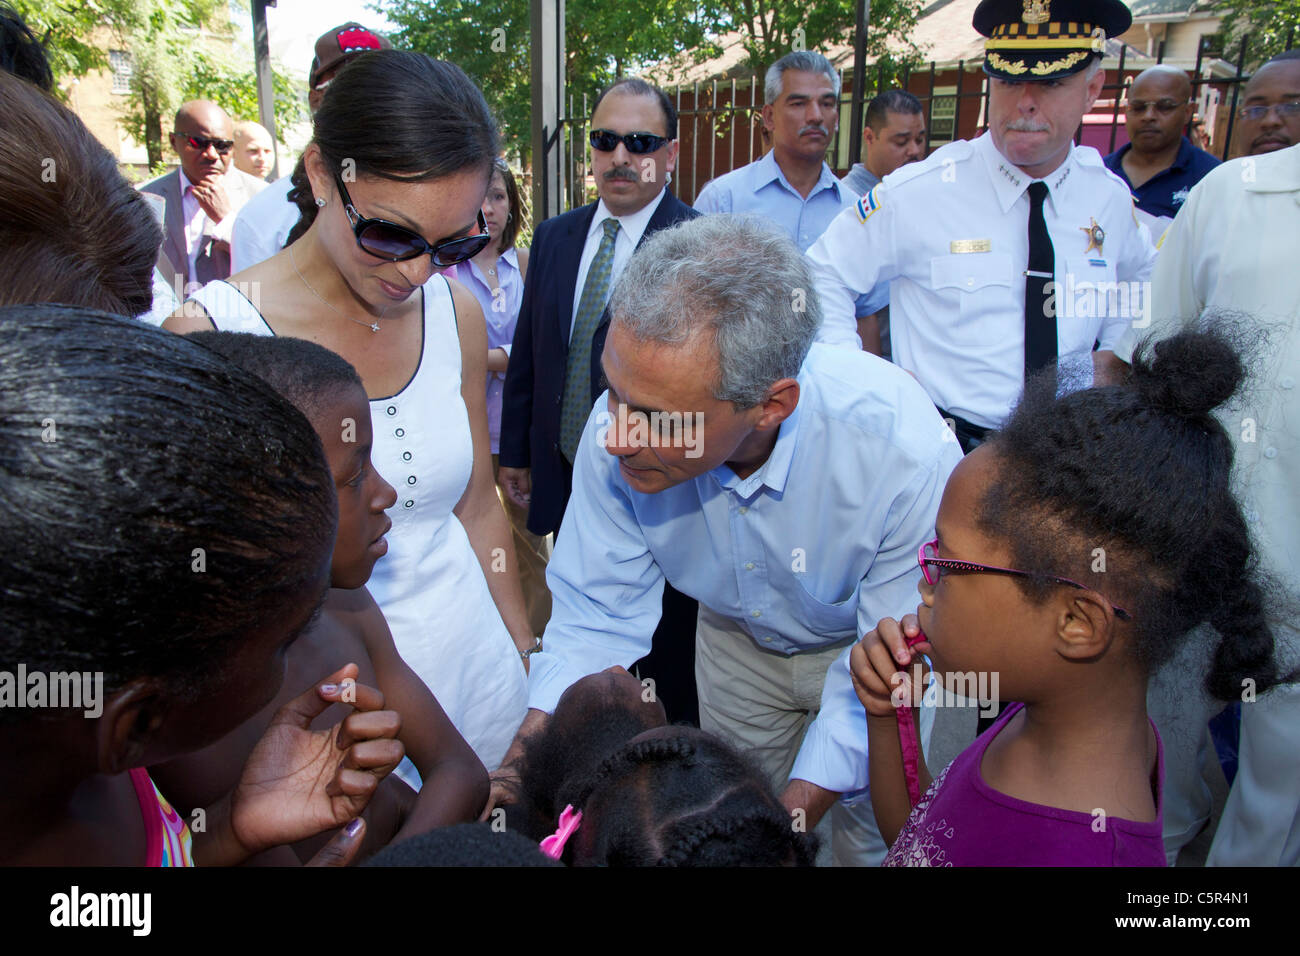 Chicago Mayor Rahm Emanuel chats with children at an anti-violence rally in the city's Austin neighborhood. - Stock Image